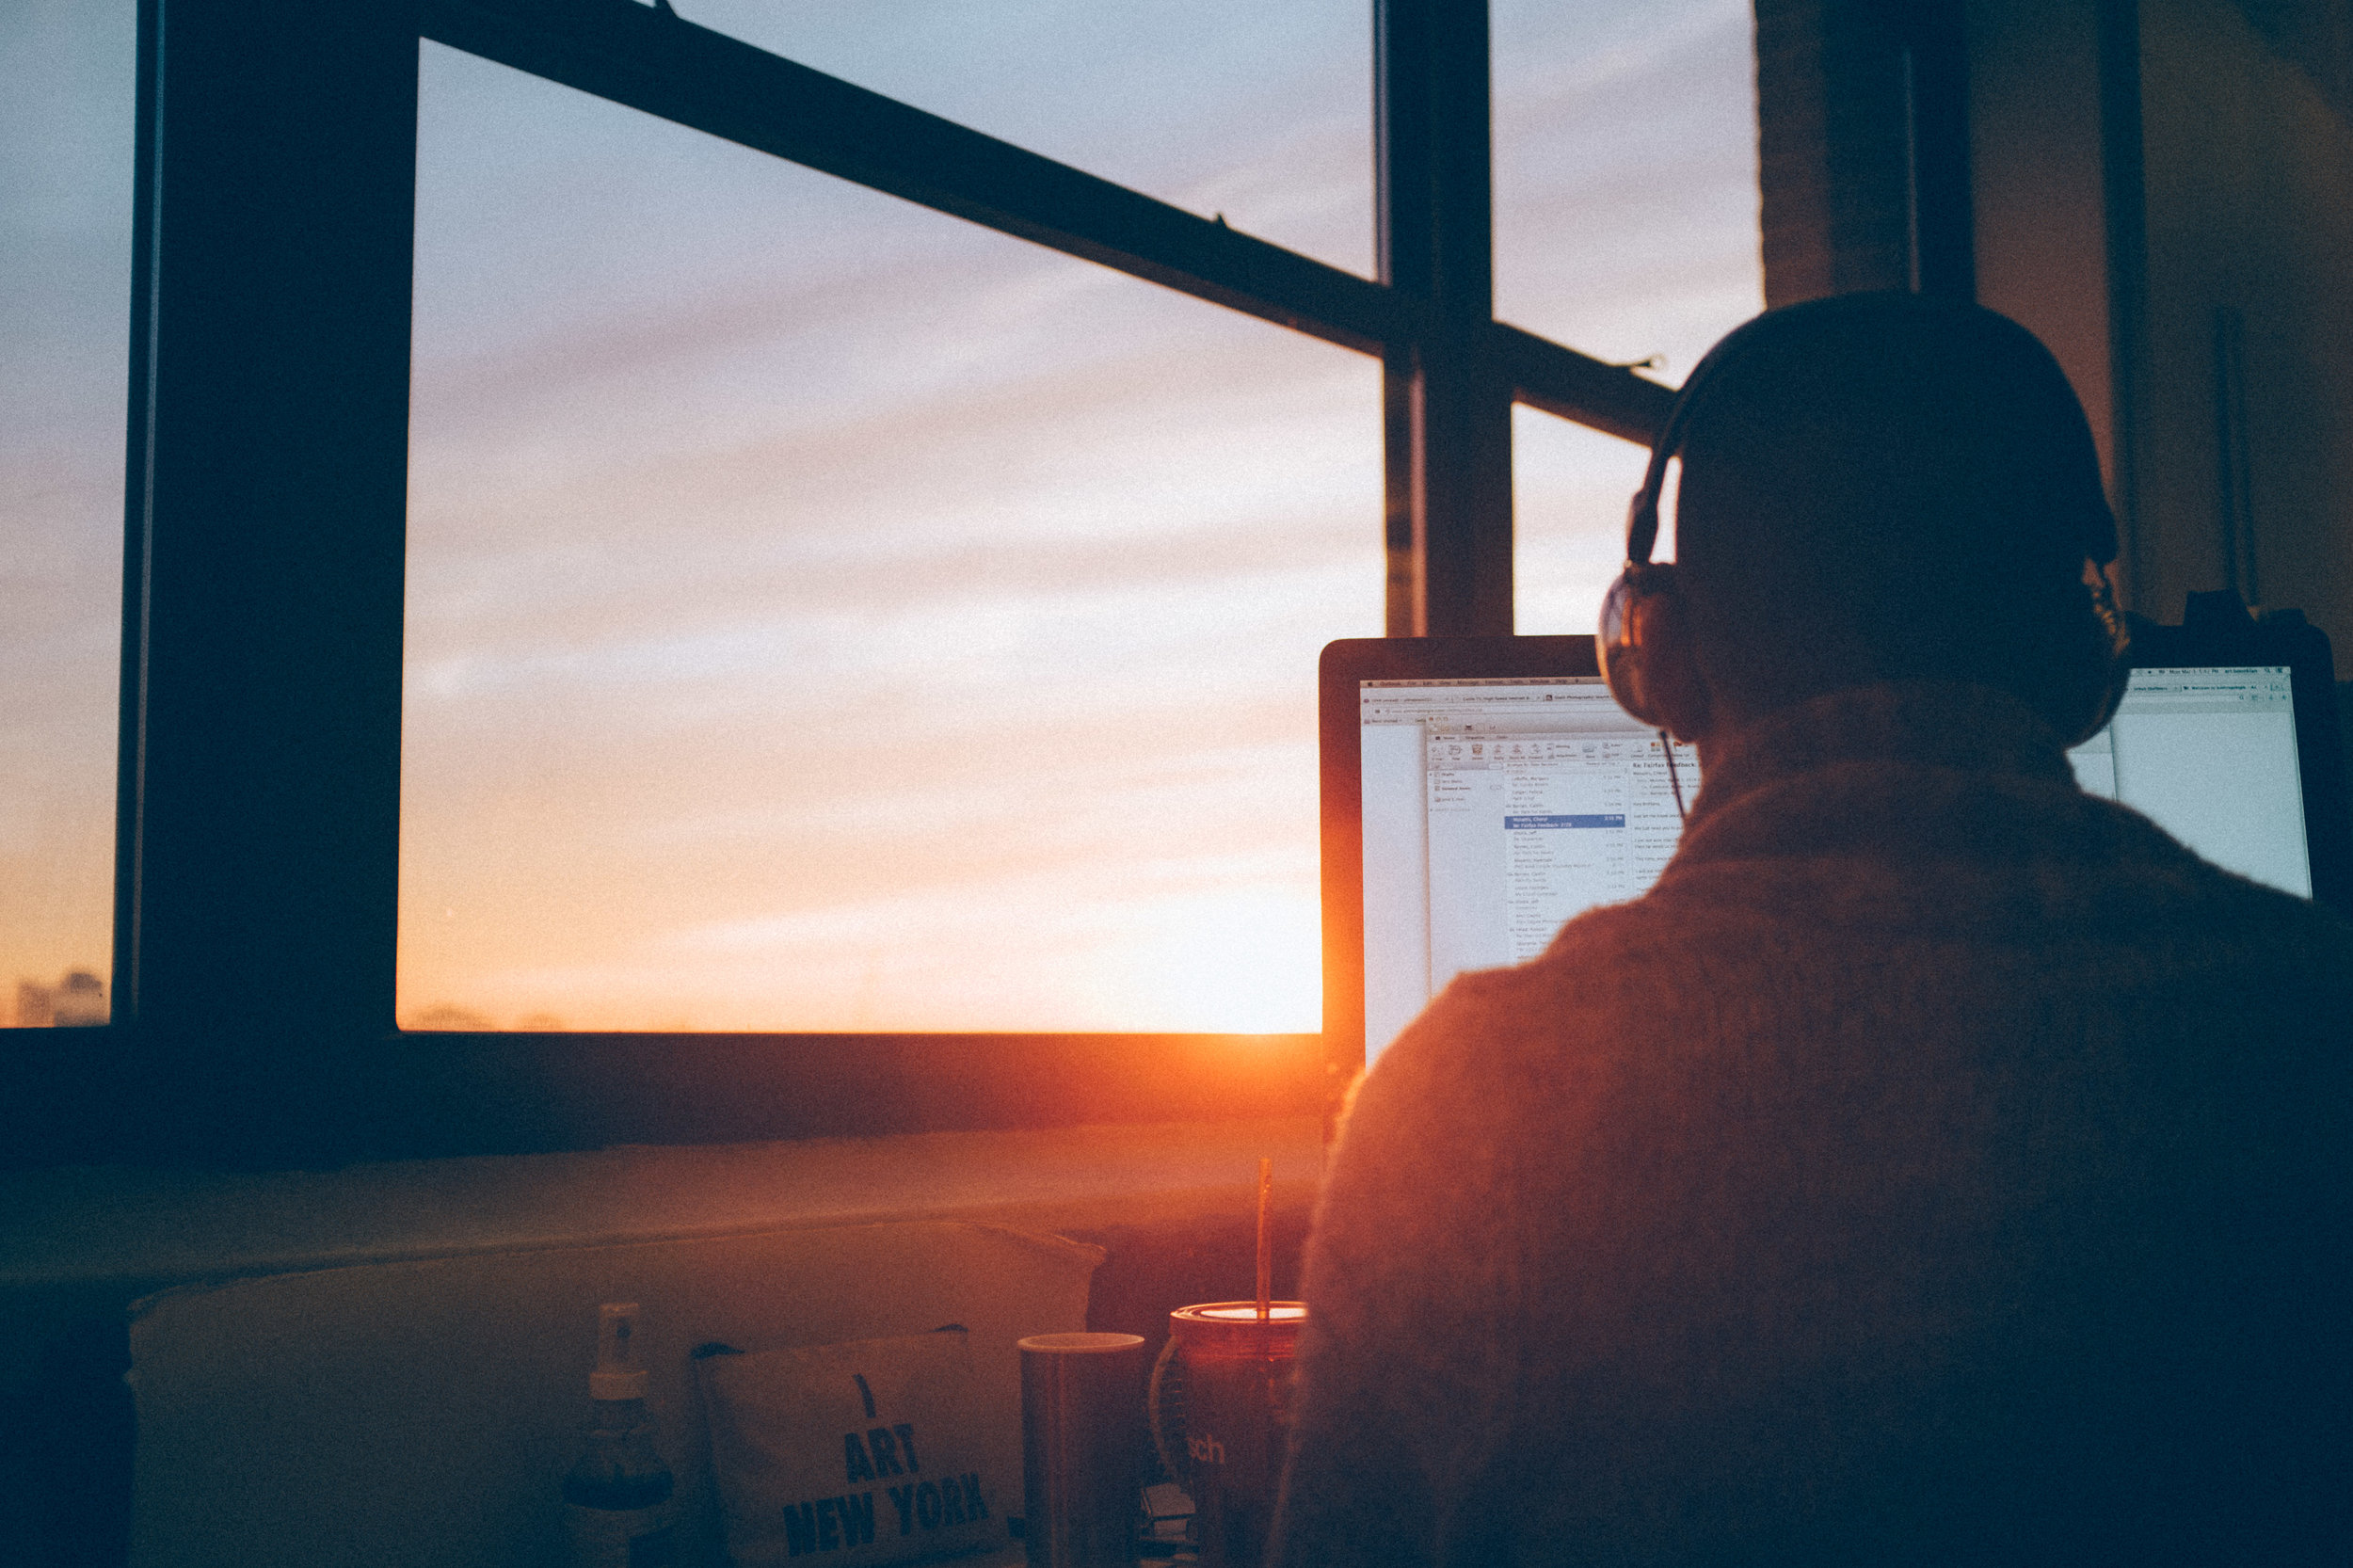 a man sits at a desk in front of a window. The sun is setting and the man is wearing headphones looking at a computer screen. He appears to be dictating words to the screen